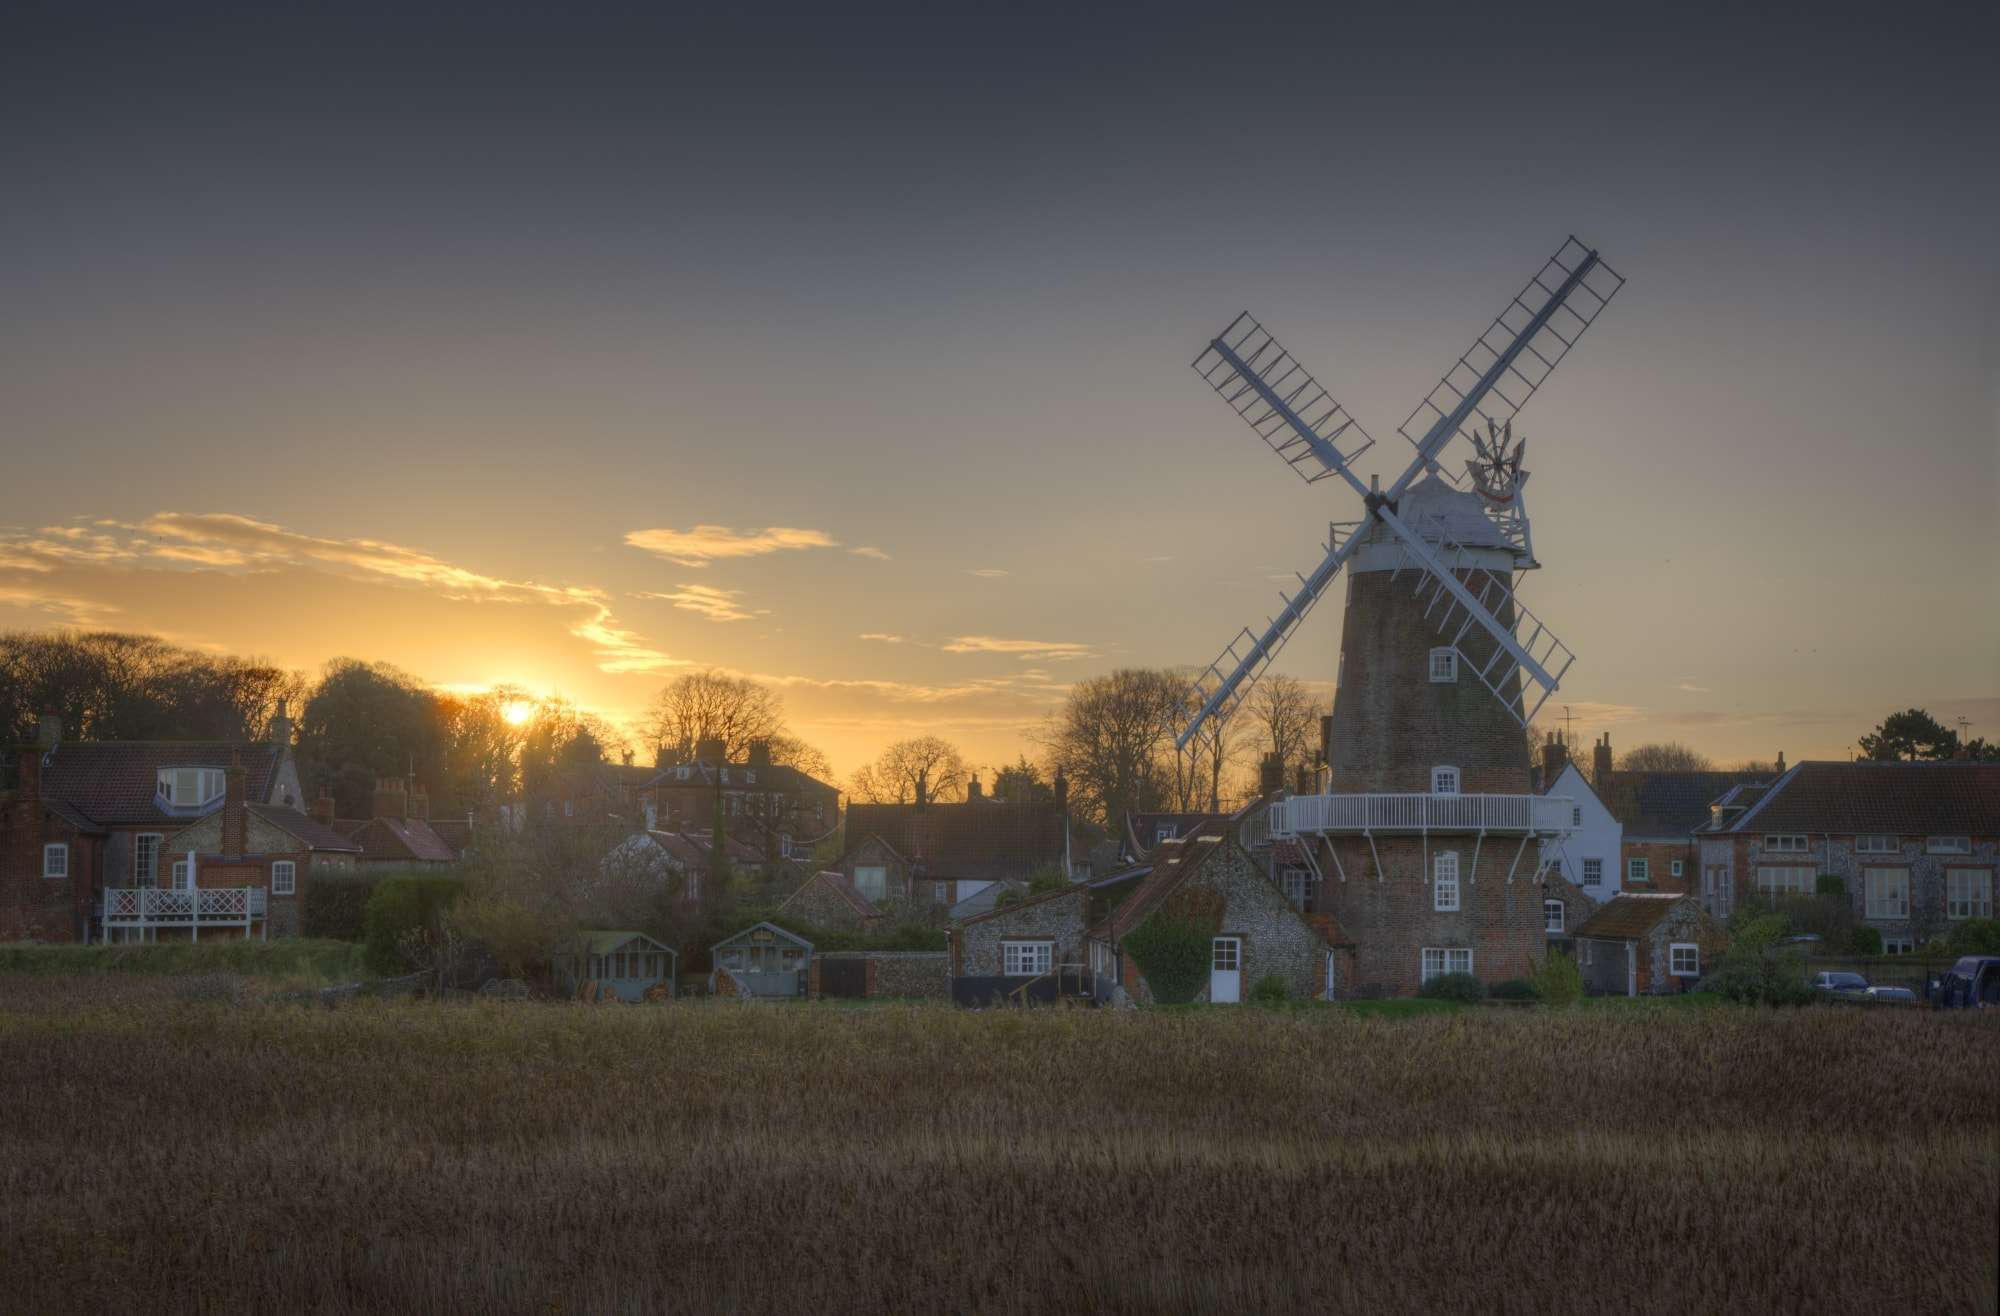 Image of Windmill in coastal village of Blakeney, Norfolk, England